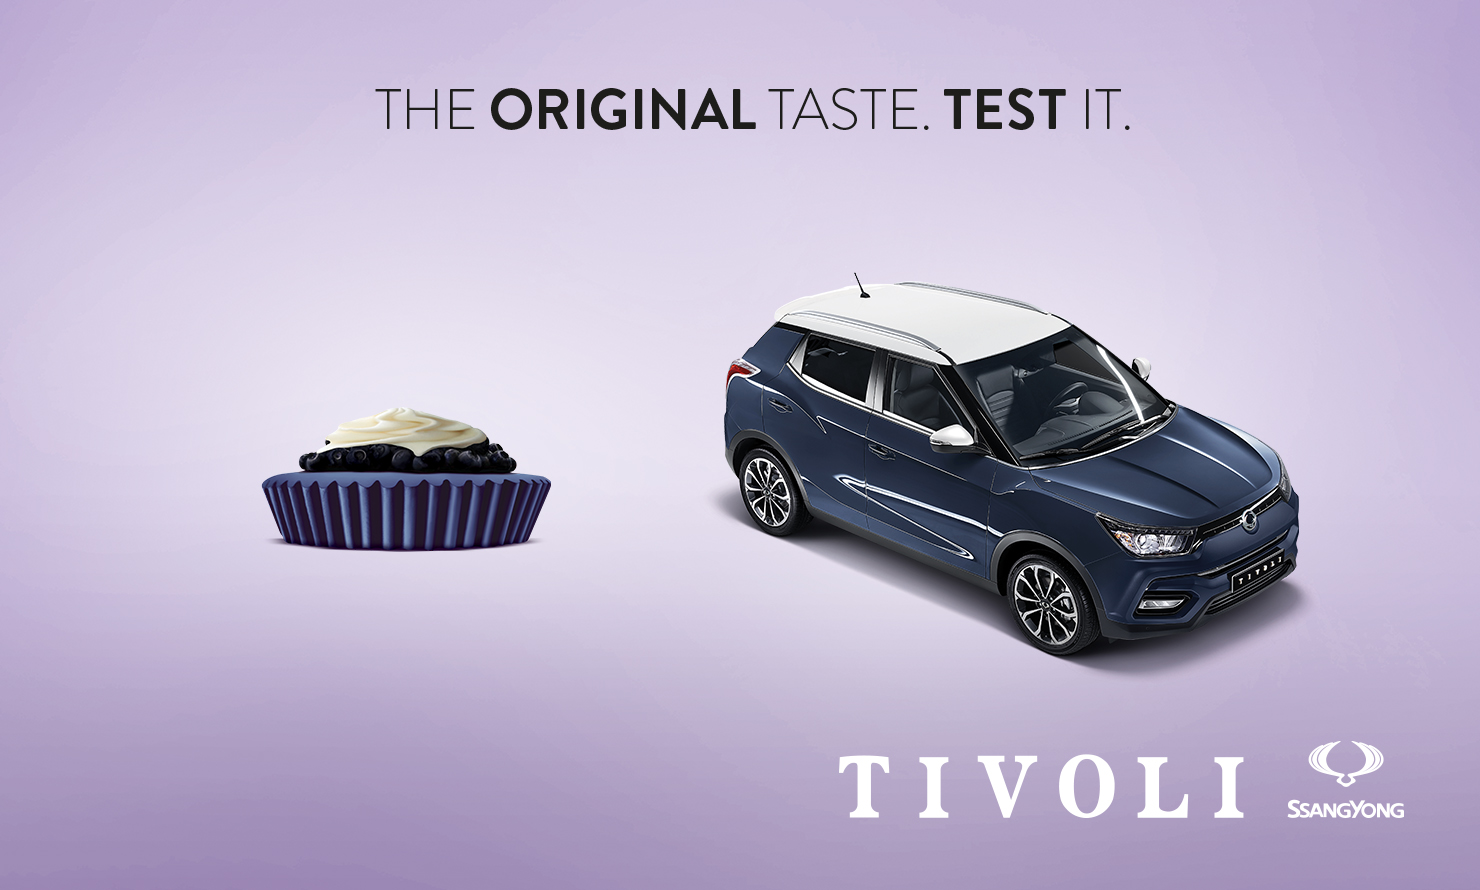 https://kubelibre.com/uploads/Slider-work-tutti-clienti/ssangyong-tivoli-the-original-taste-test-it-4.jpg